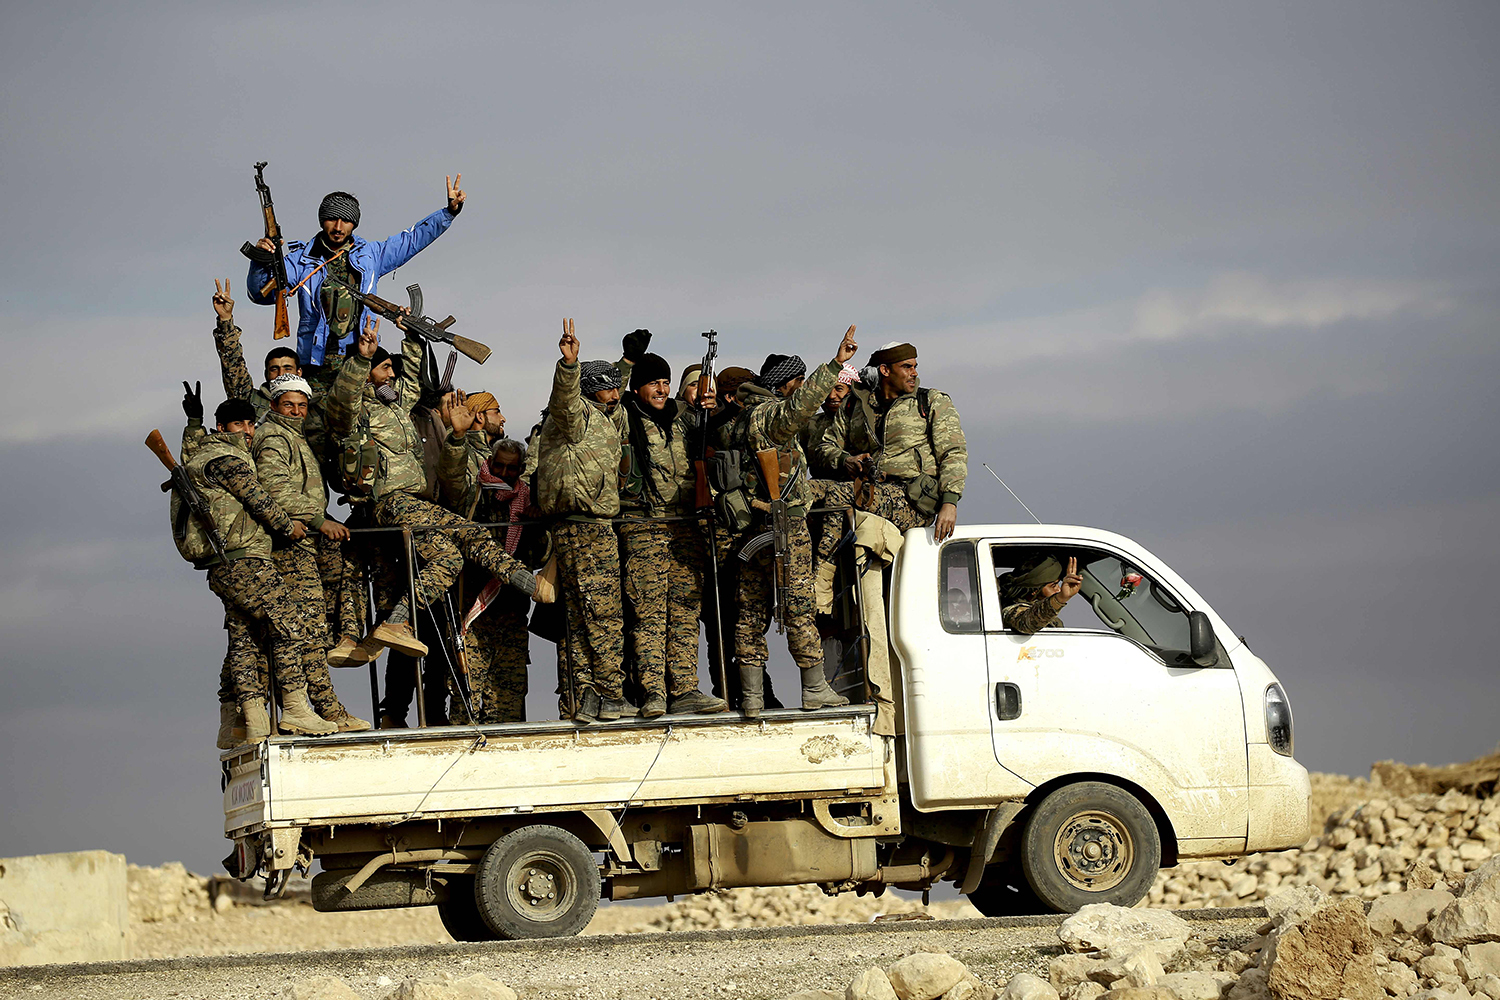 TOPSHOT - Fighters from the Kurdish-Arab alliance, known as the Syrian Democratic Forces, wave from a truck driving through the village of Al-Haymar, located on the western outskirts of the Islamic State (IS) bastion of Raqa, on December 11, 2016. The US-backed alliance announced on December 10 it would launch the second phase of its battle for the IS group's de facto Syrian capital of Raqa. / AFP PHOTO / DELIL SOULEIMAN / TT / kod 444